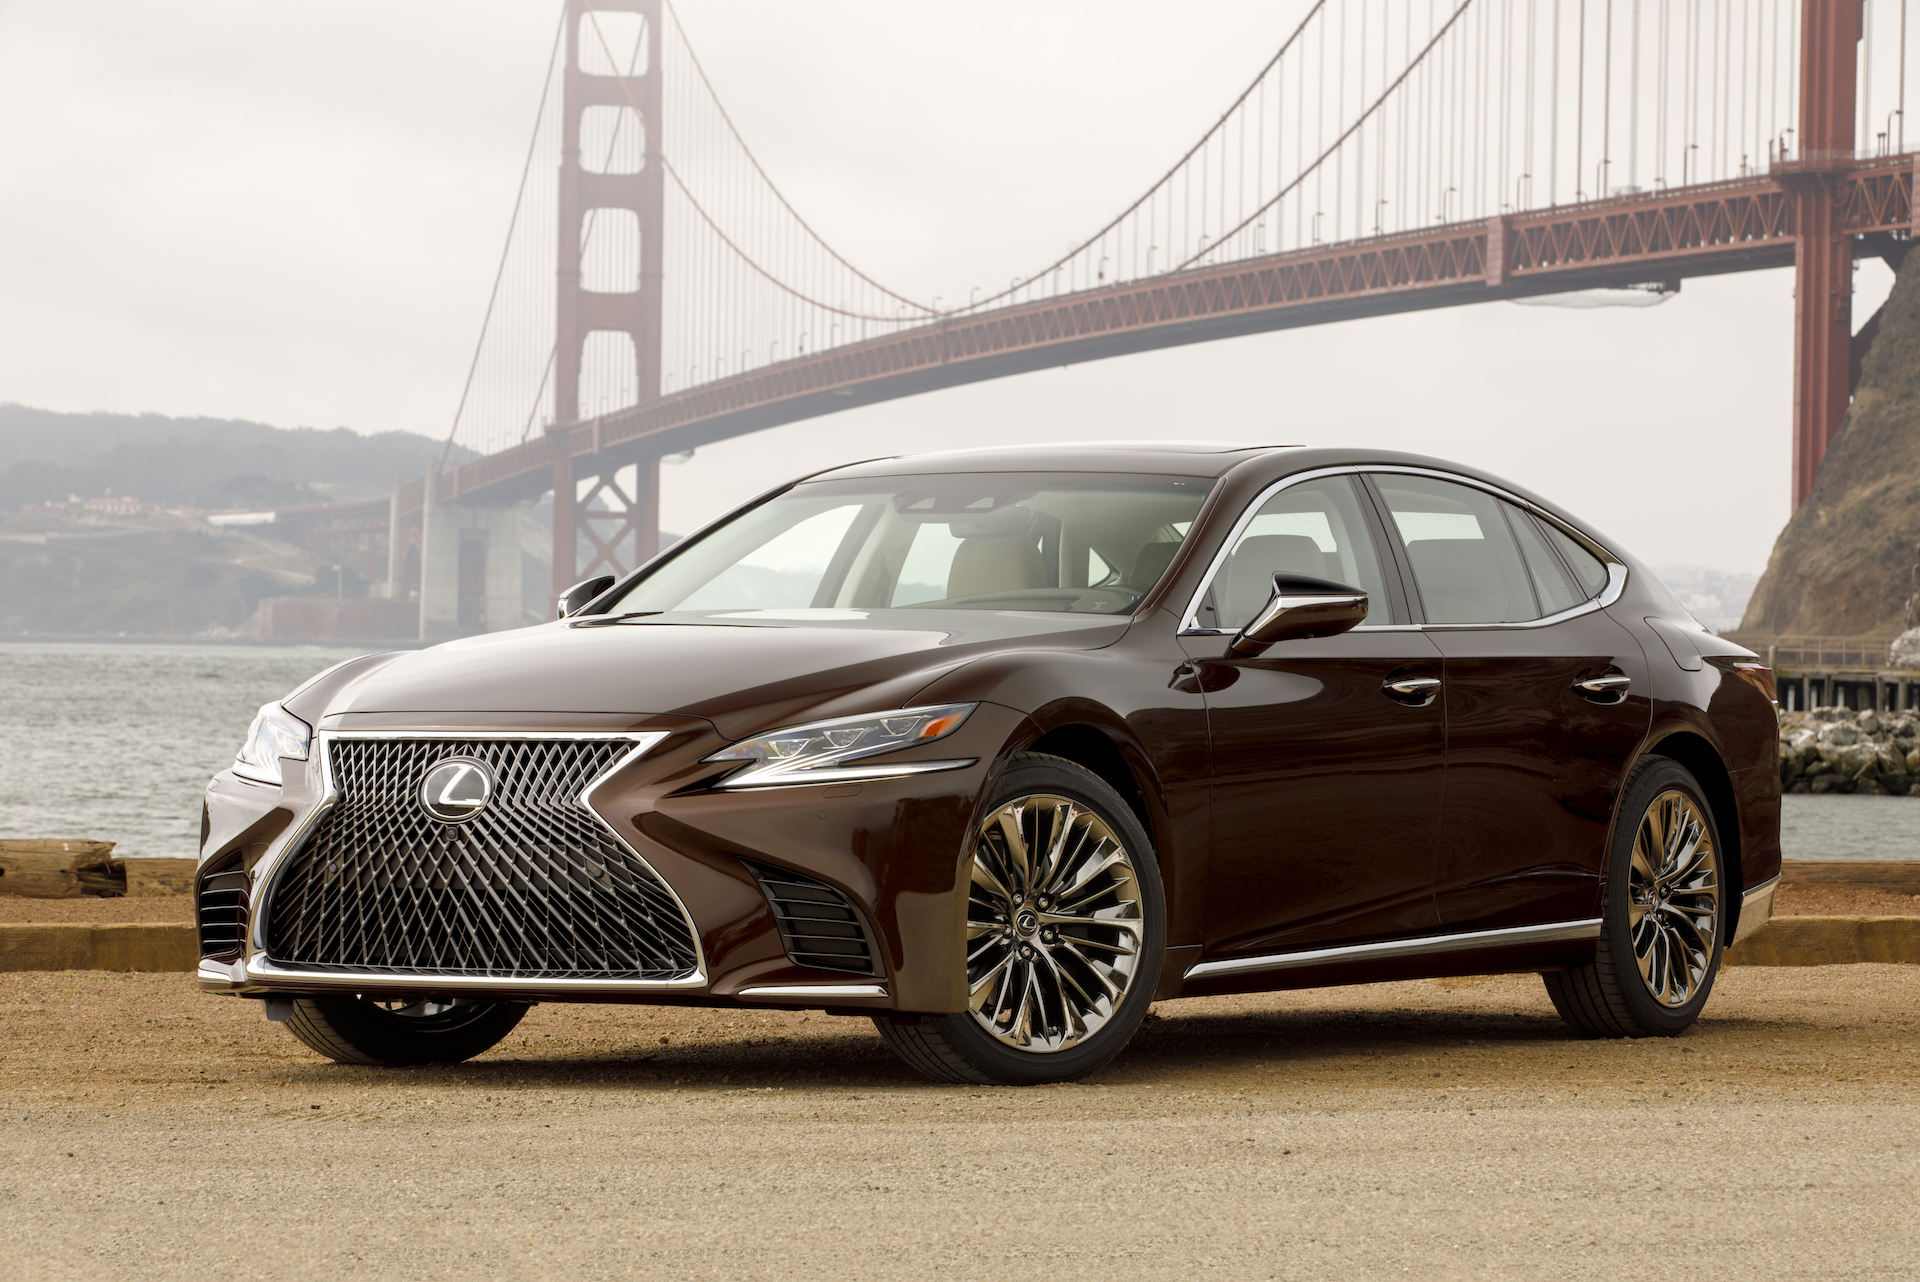 2018 Lexus LS 500 first drive an ambitious remake Page 2